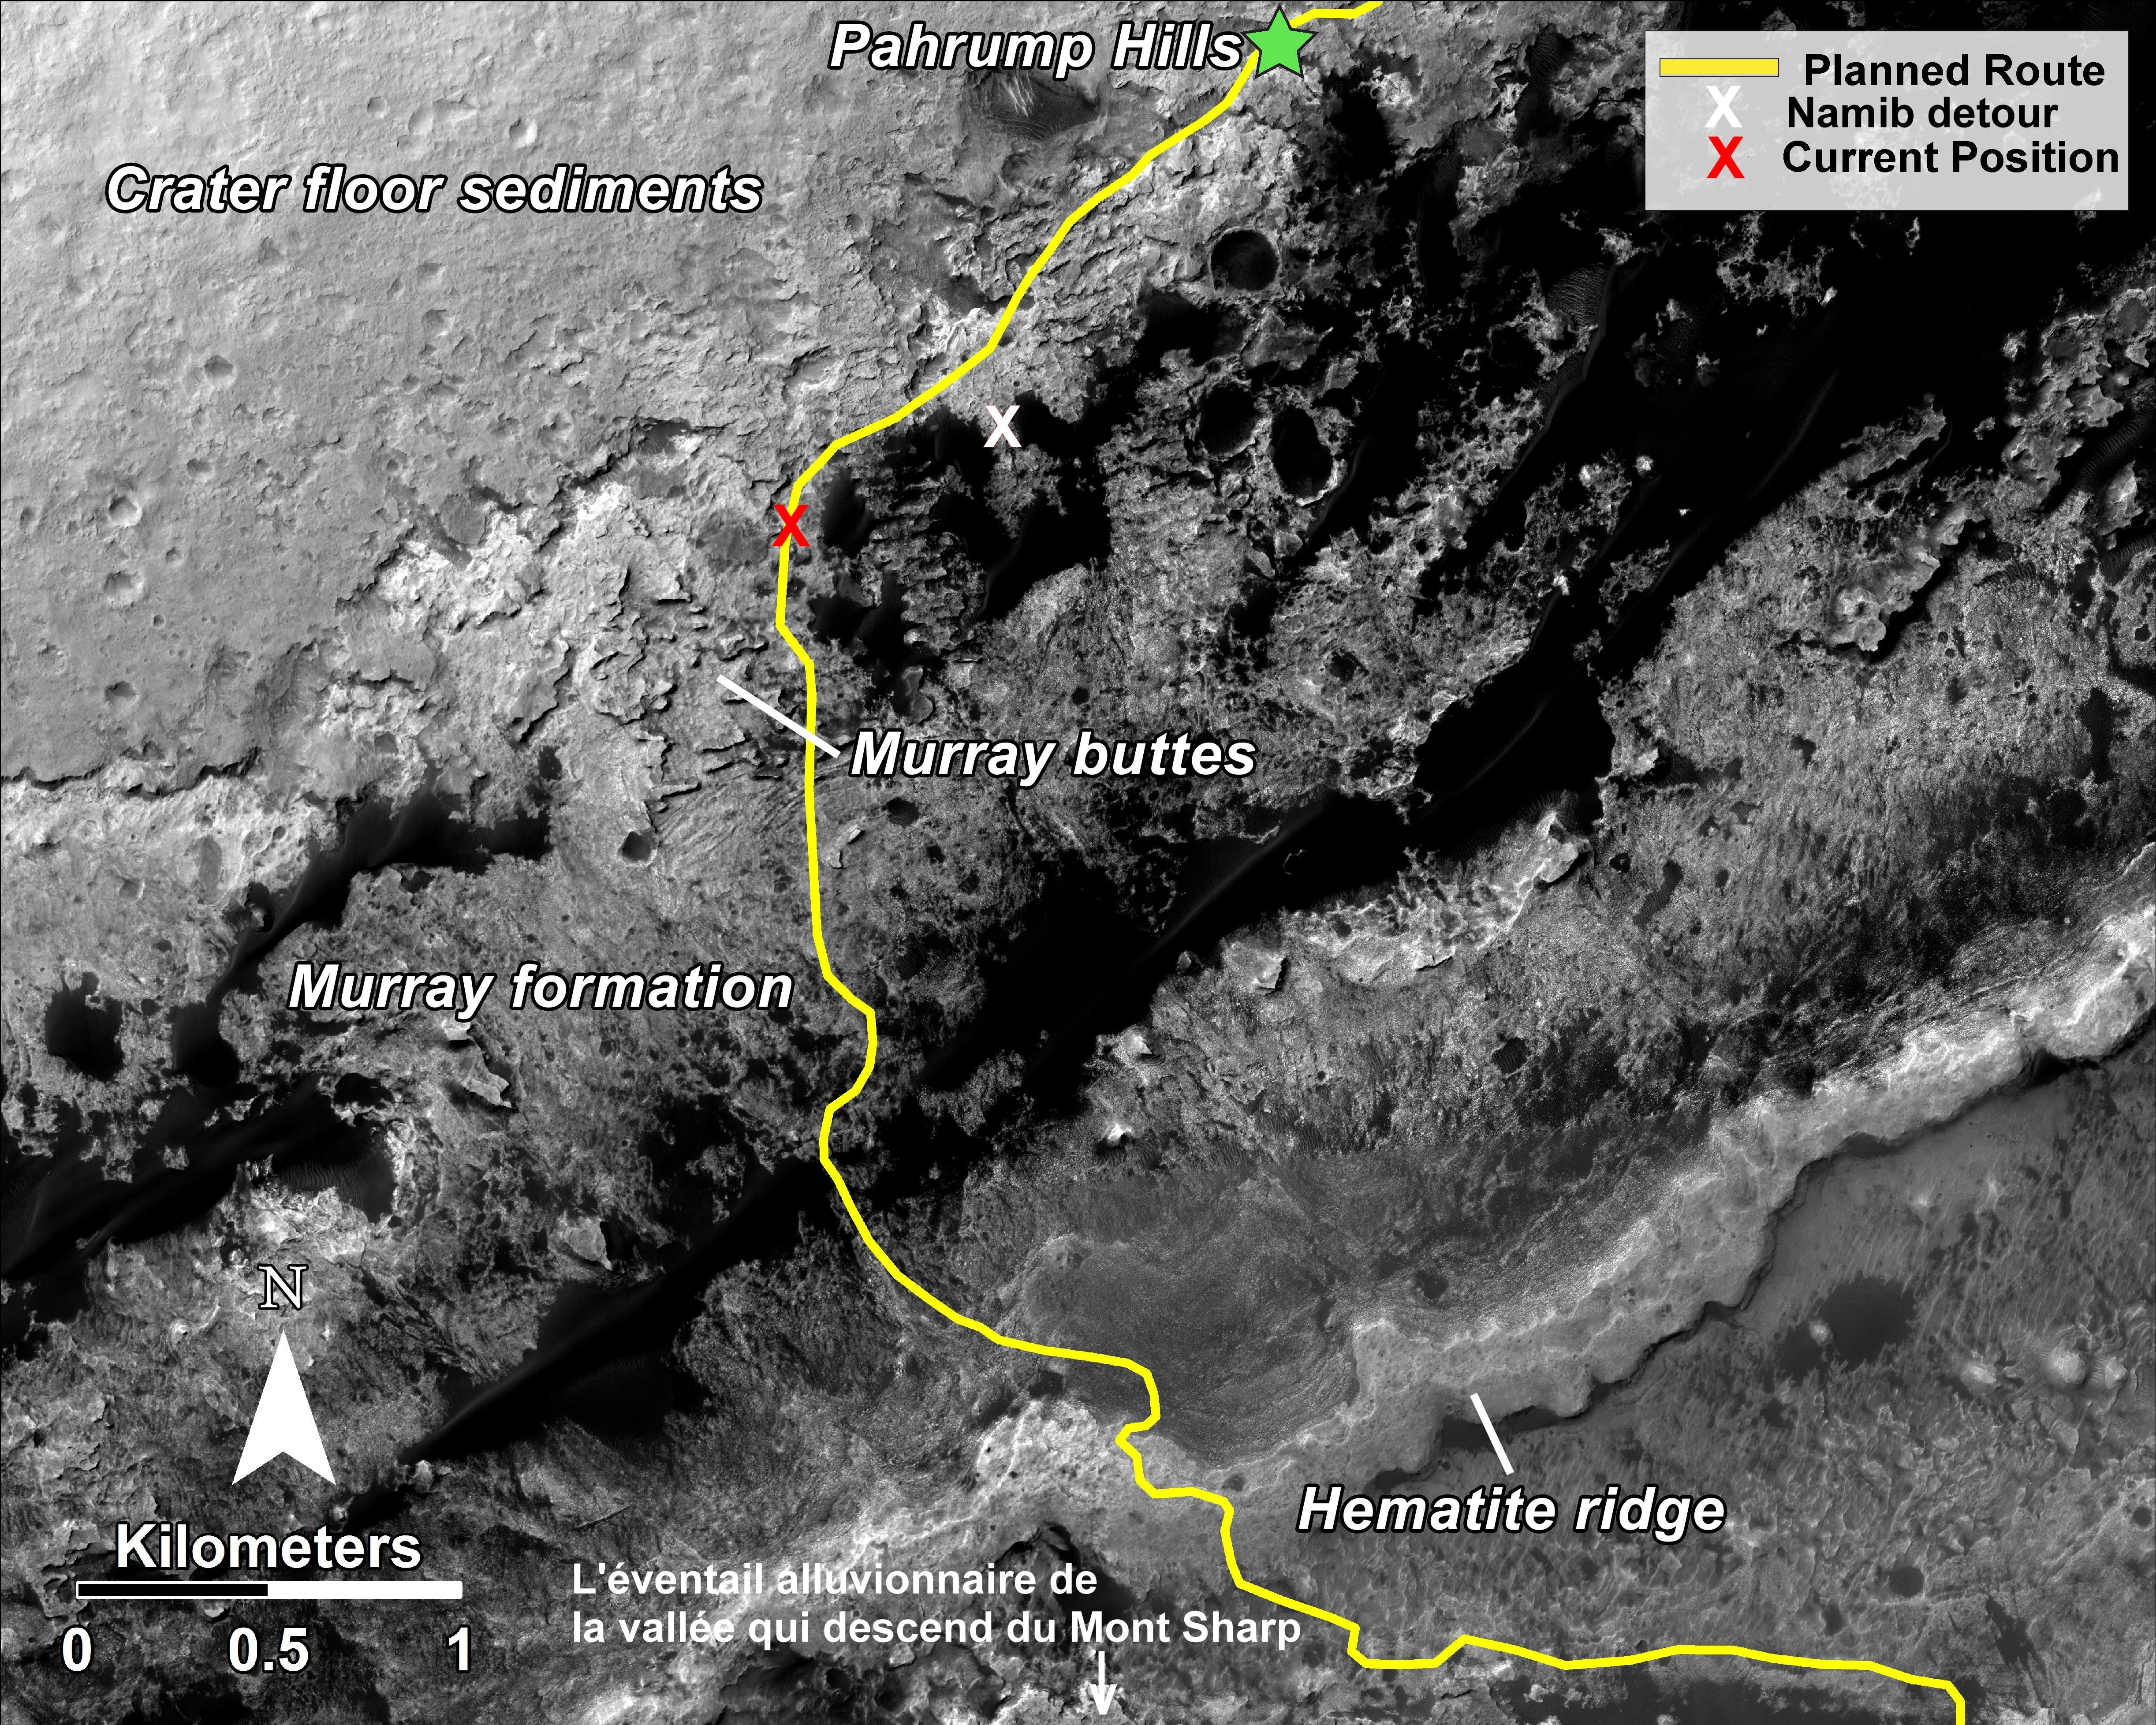 nasa-msl-mro-curiosity-rover-hirise-planned-route-map-pahrump-hills-to-mount-sharp-pia18780-full-renseigné-1 7 16